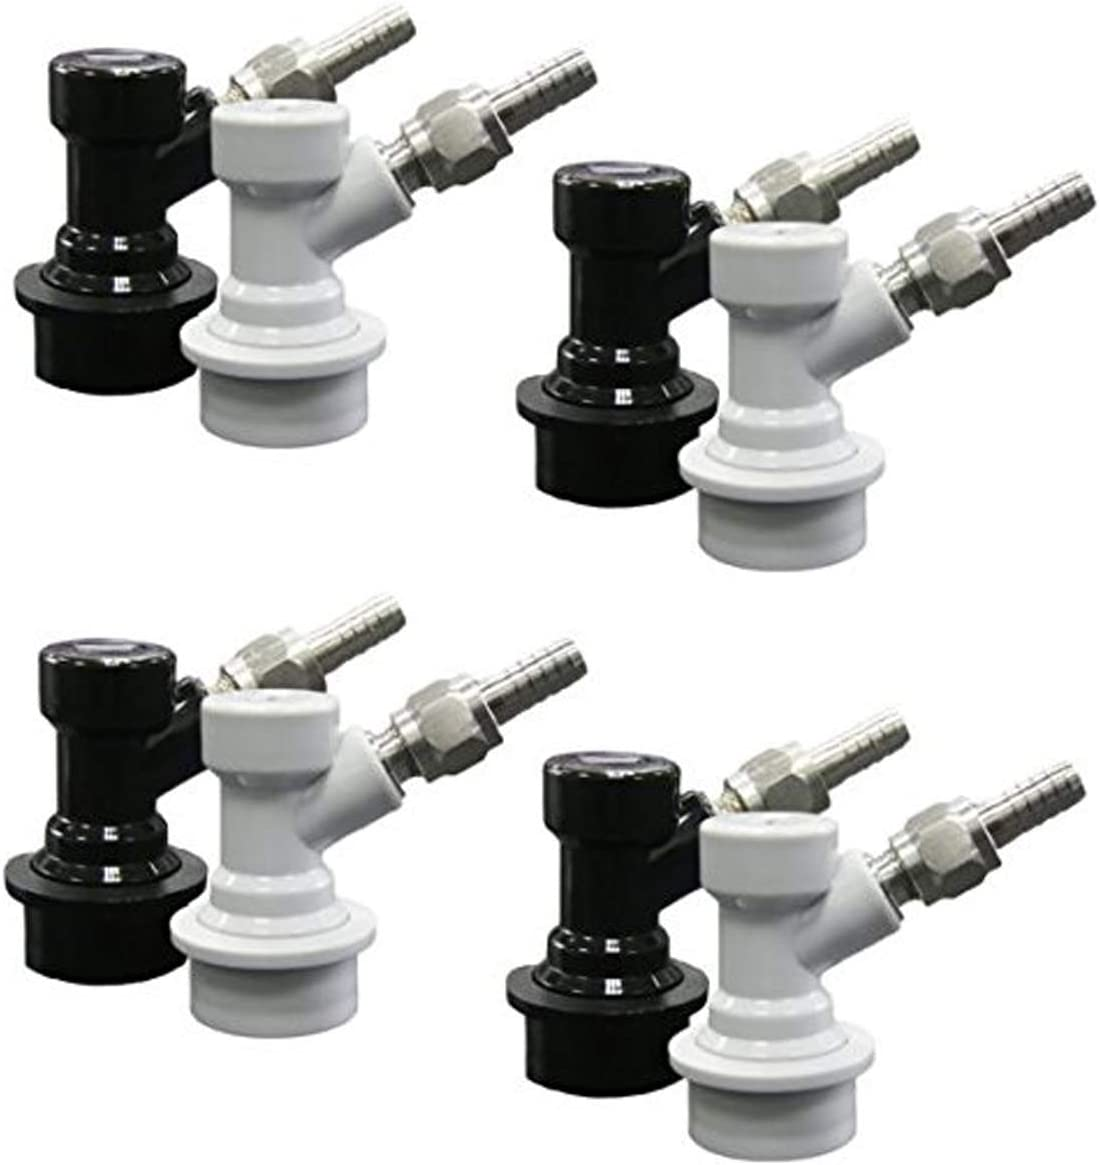 PERA Corny Keg Quick Disconnect Ball Lock Disconnect Set with Swivel Nut for Home Brewing Beer Keg System (PACK OF 8)